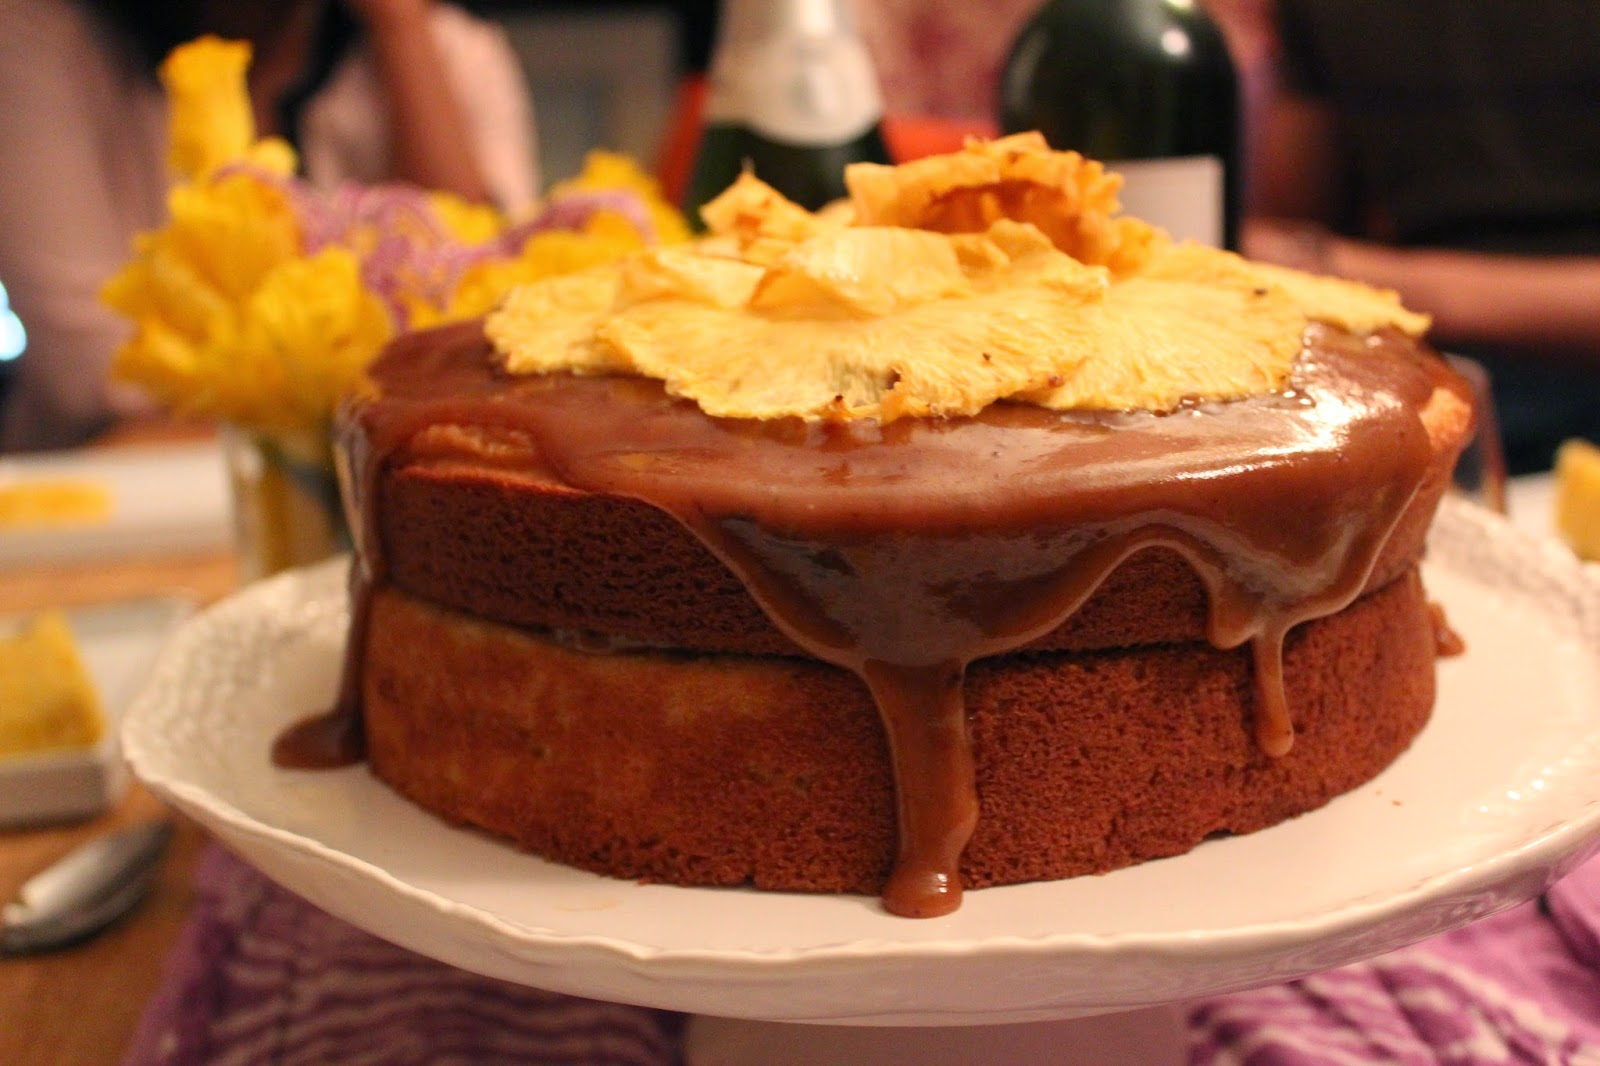 Caramel Cake with Pineapple Flowers